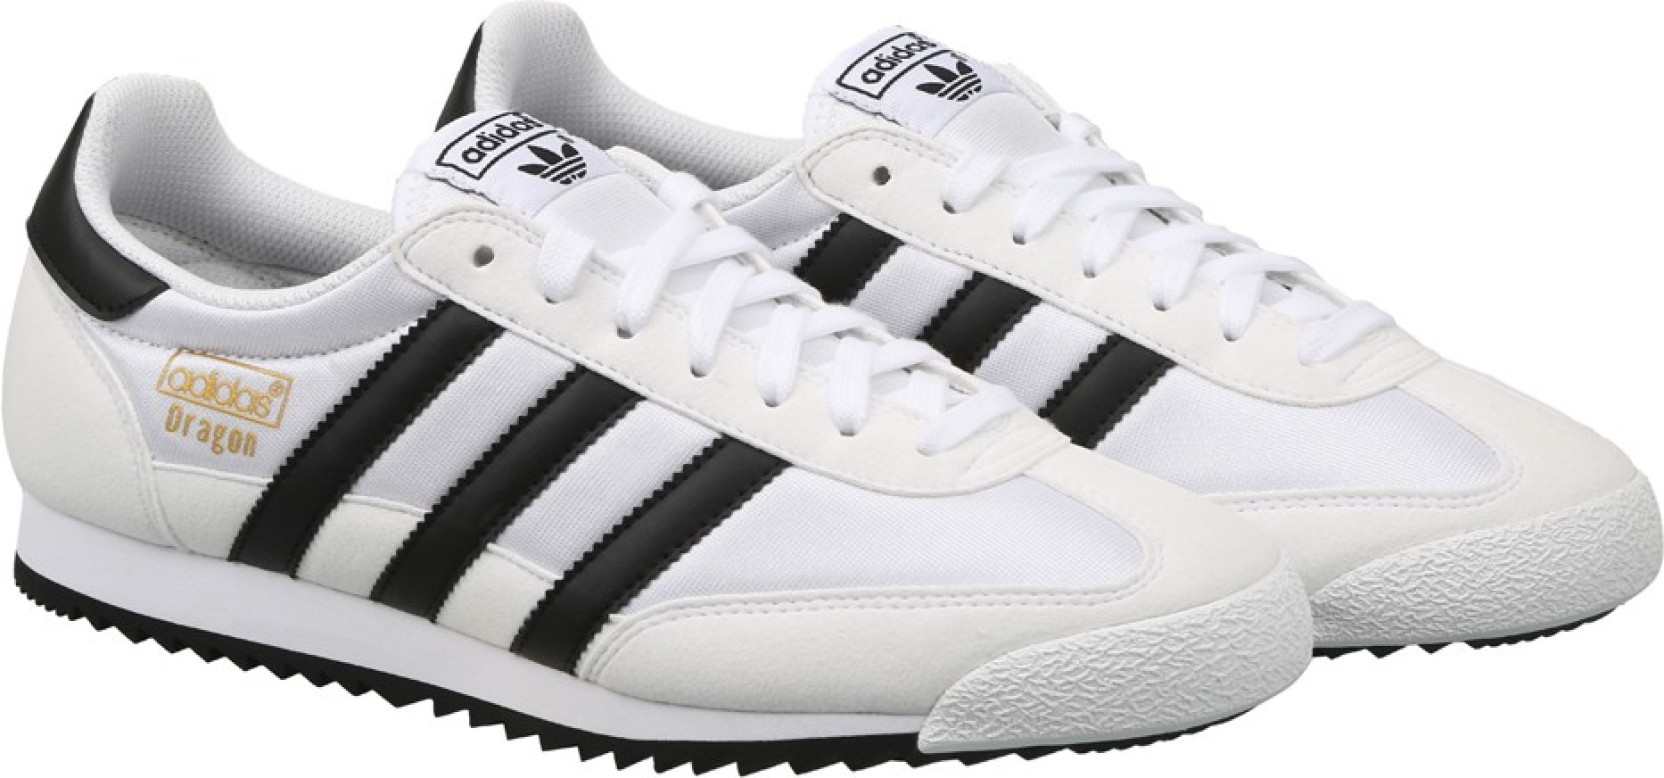 newest fd447 3deb2 ... low cost adidas originals dragon og sneakers for men. home 5eafc 23885